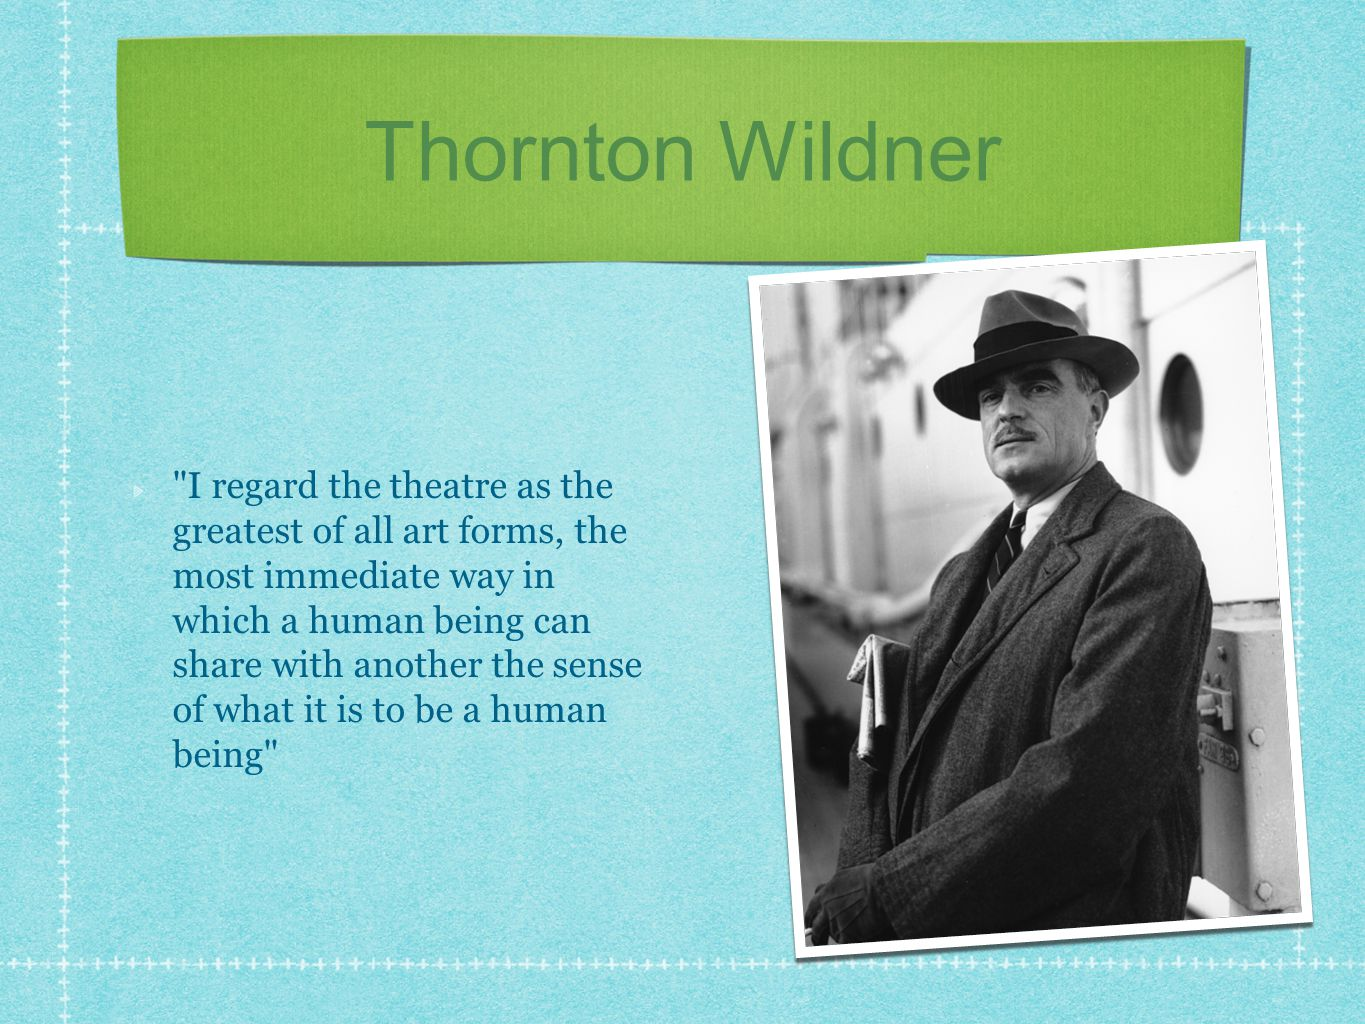 Thornton Wildner I regard the theatre as the greatest of all art forms, the most immediate way in which a human being can share with another the sense of what it is to be a human being